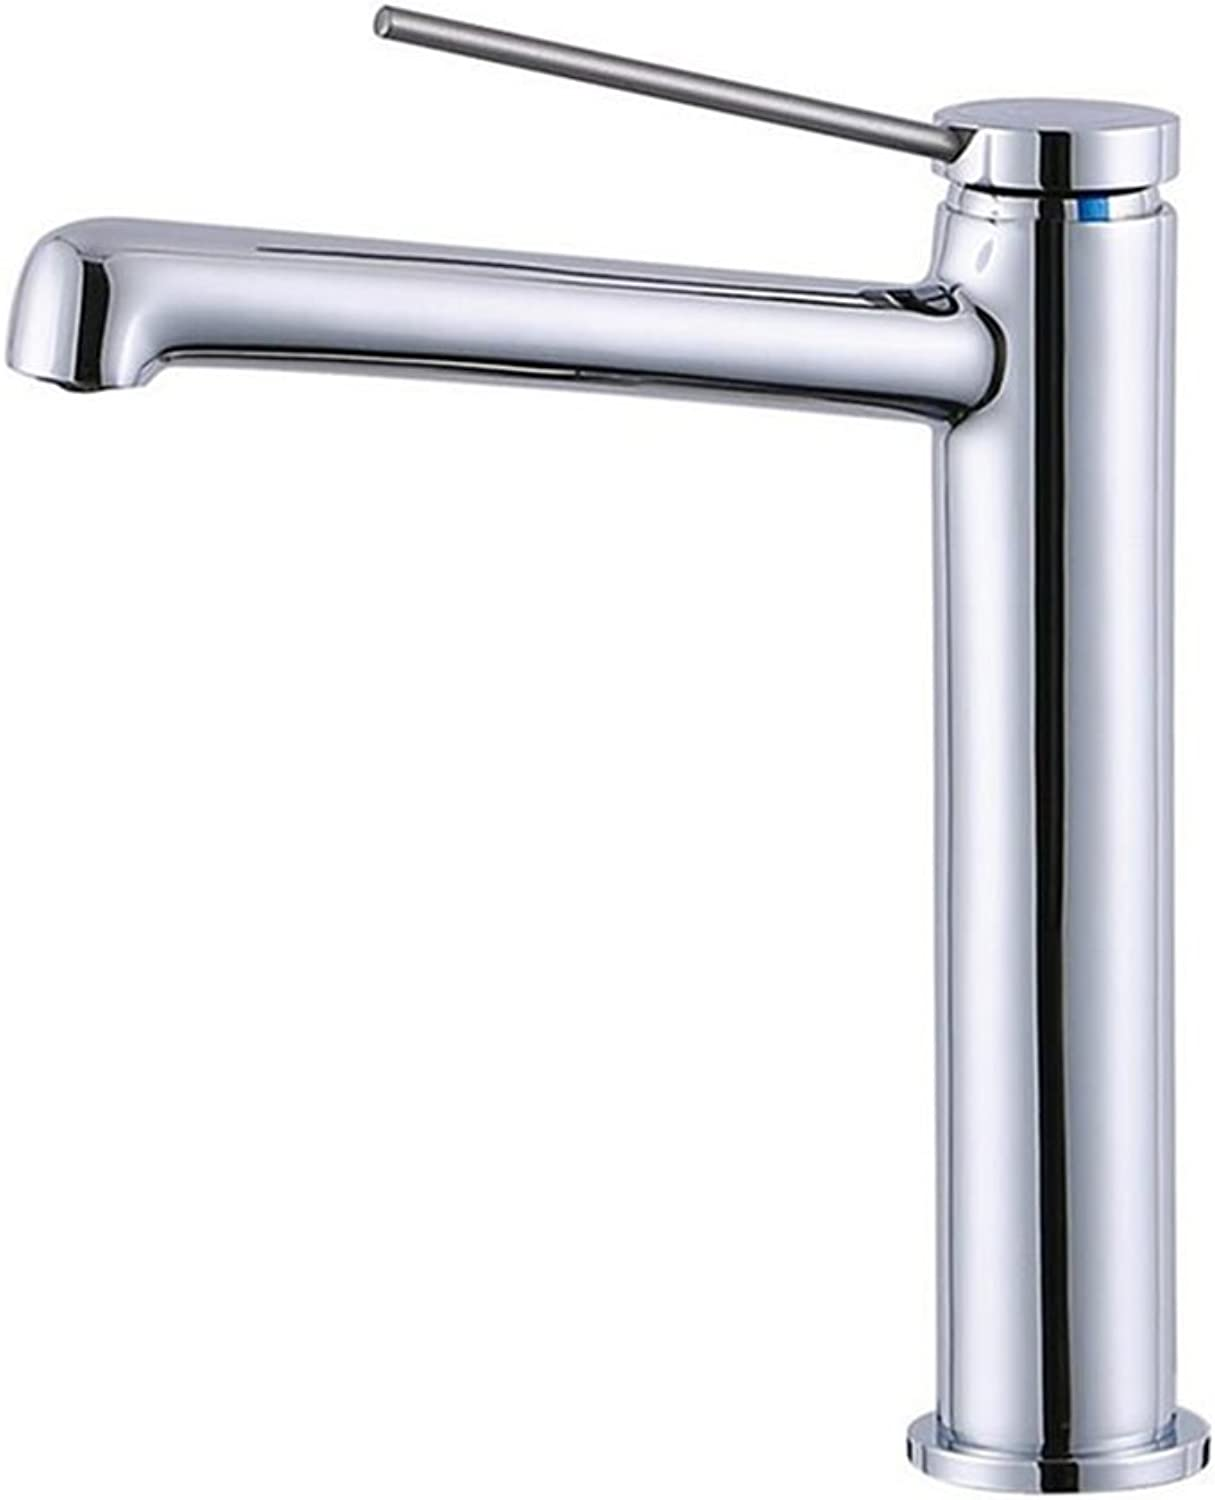 Bathroom Basin Faucet Brass Chrome-plated High Long Taps Lollipop Single Handle Lift Hot And Cold Mixer Tap Bathroom Sink Taps